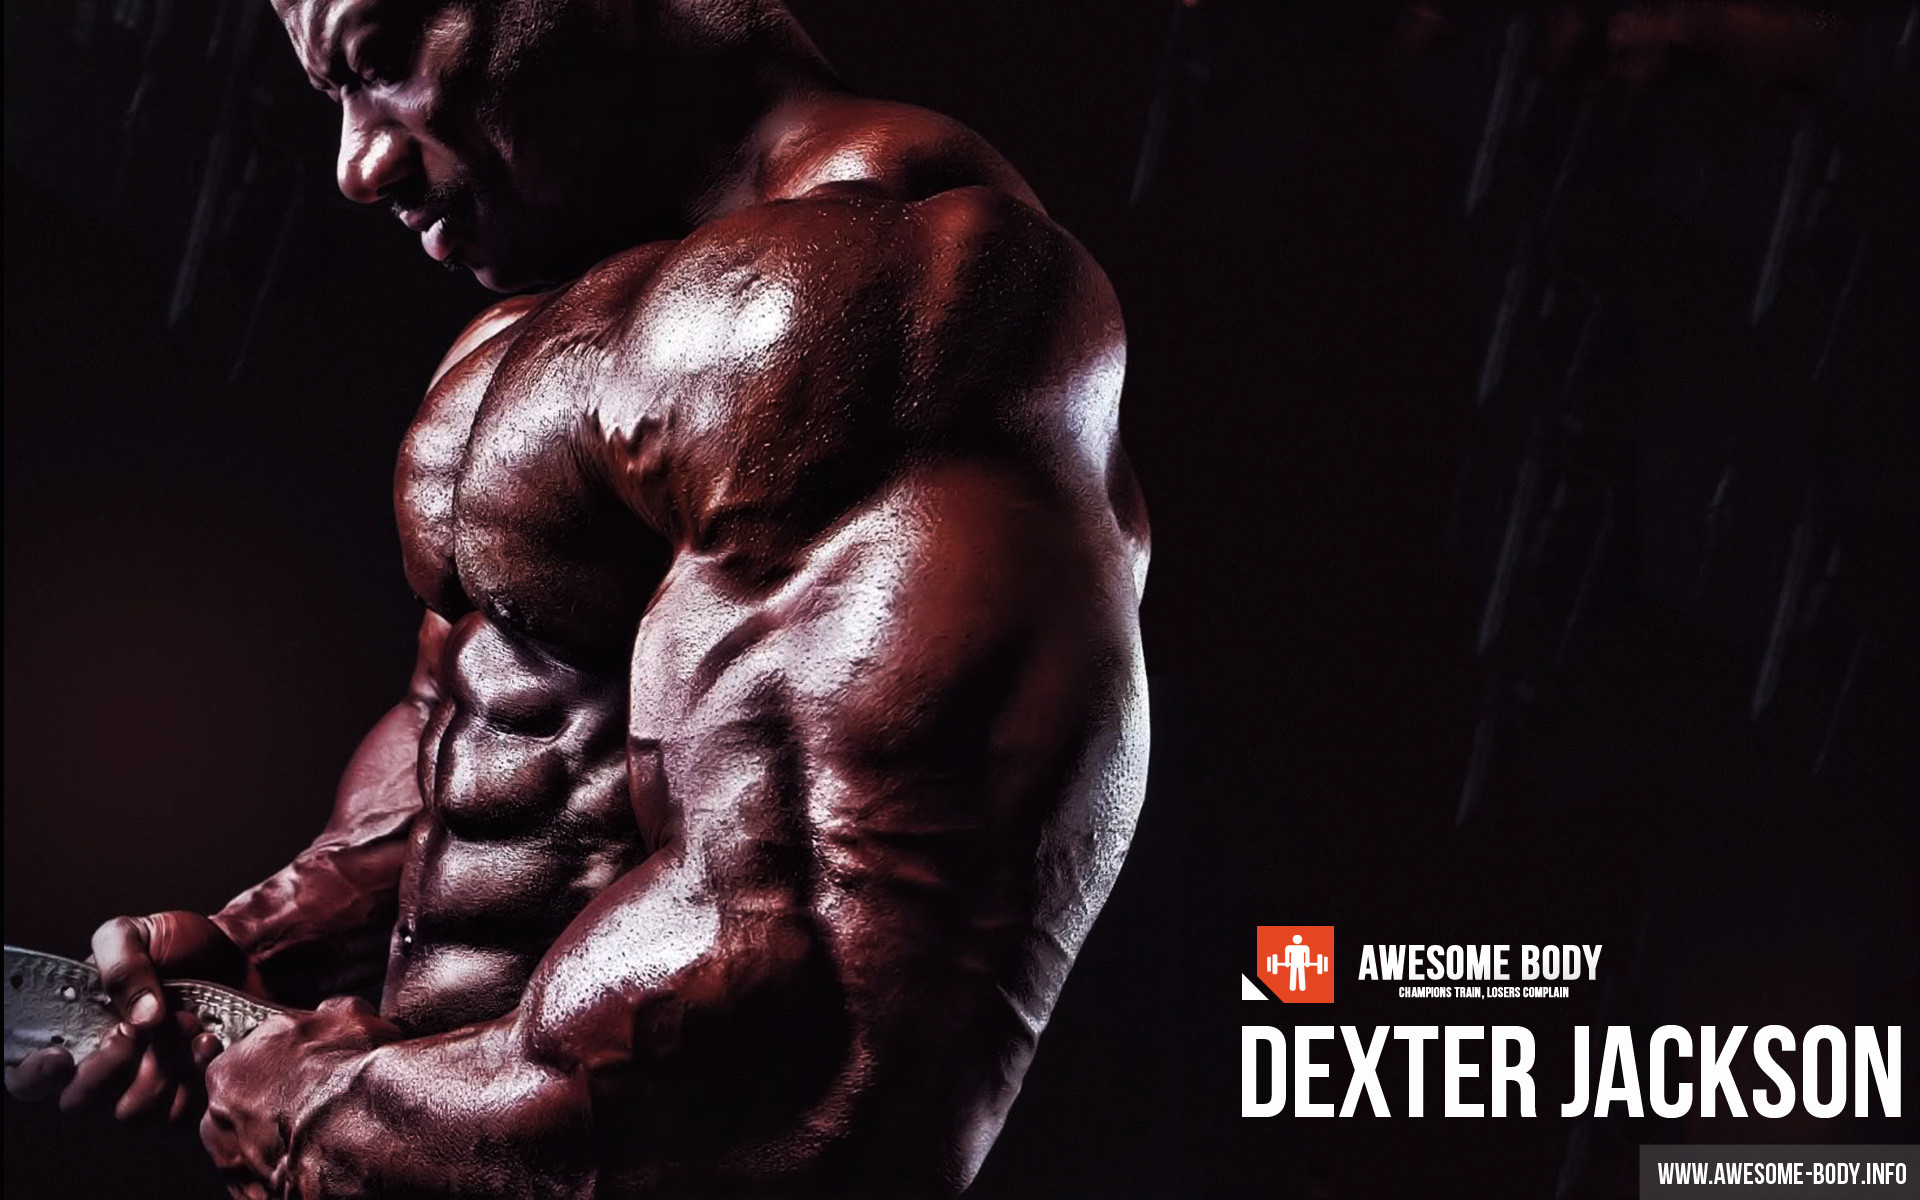 Dexter Jackson Bodybuilder 2013 Bodybuilding Wallpaper HD Awesome 1920x1200